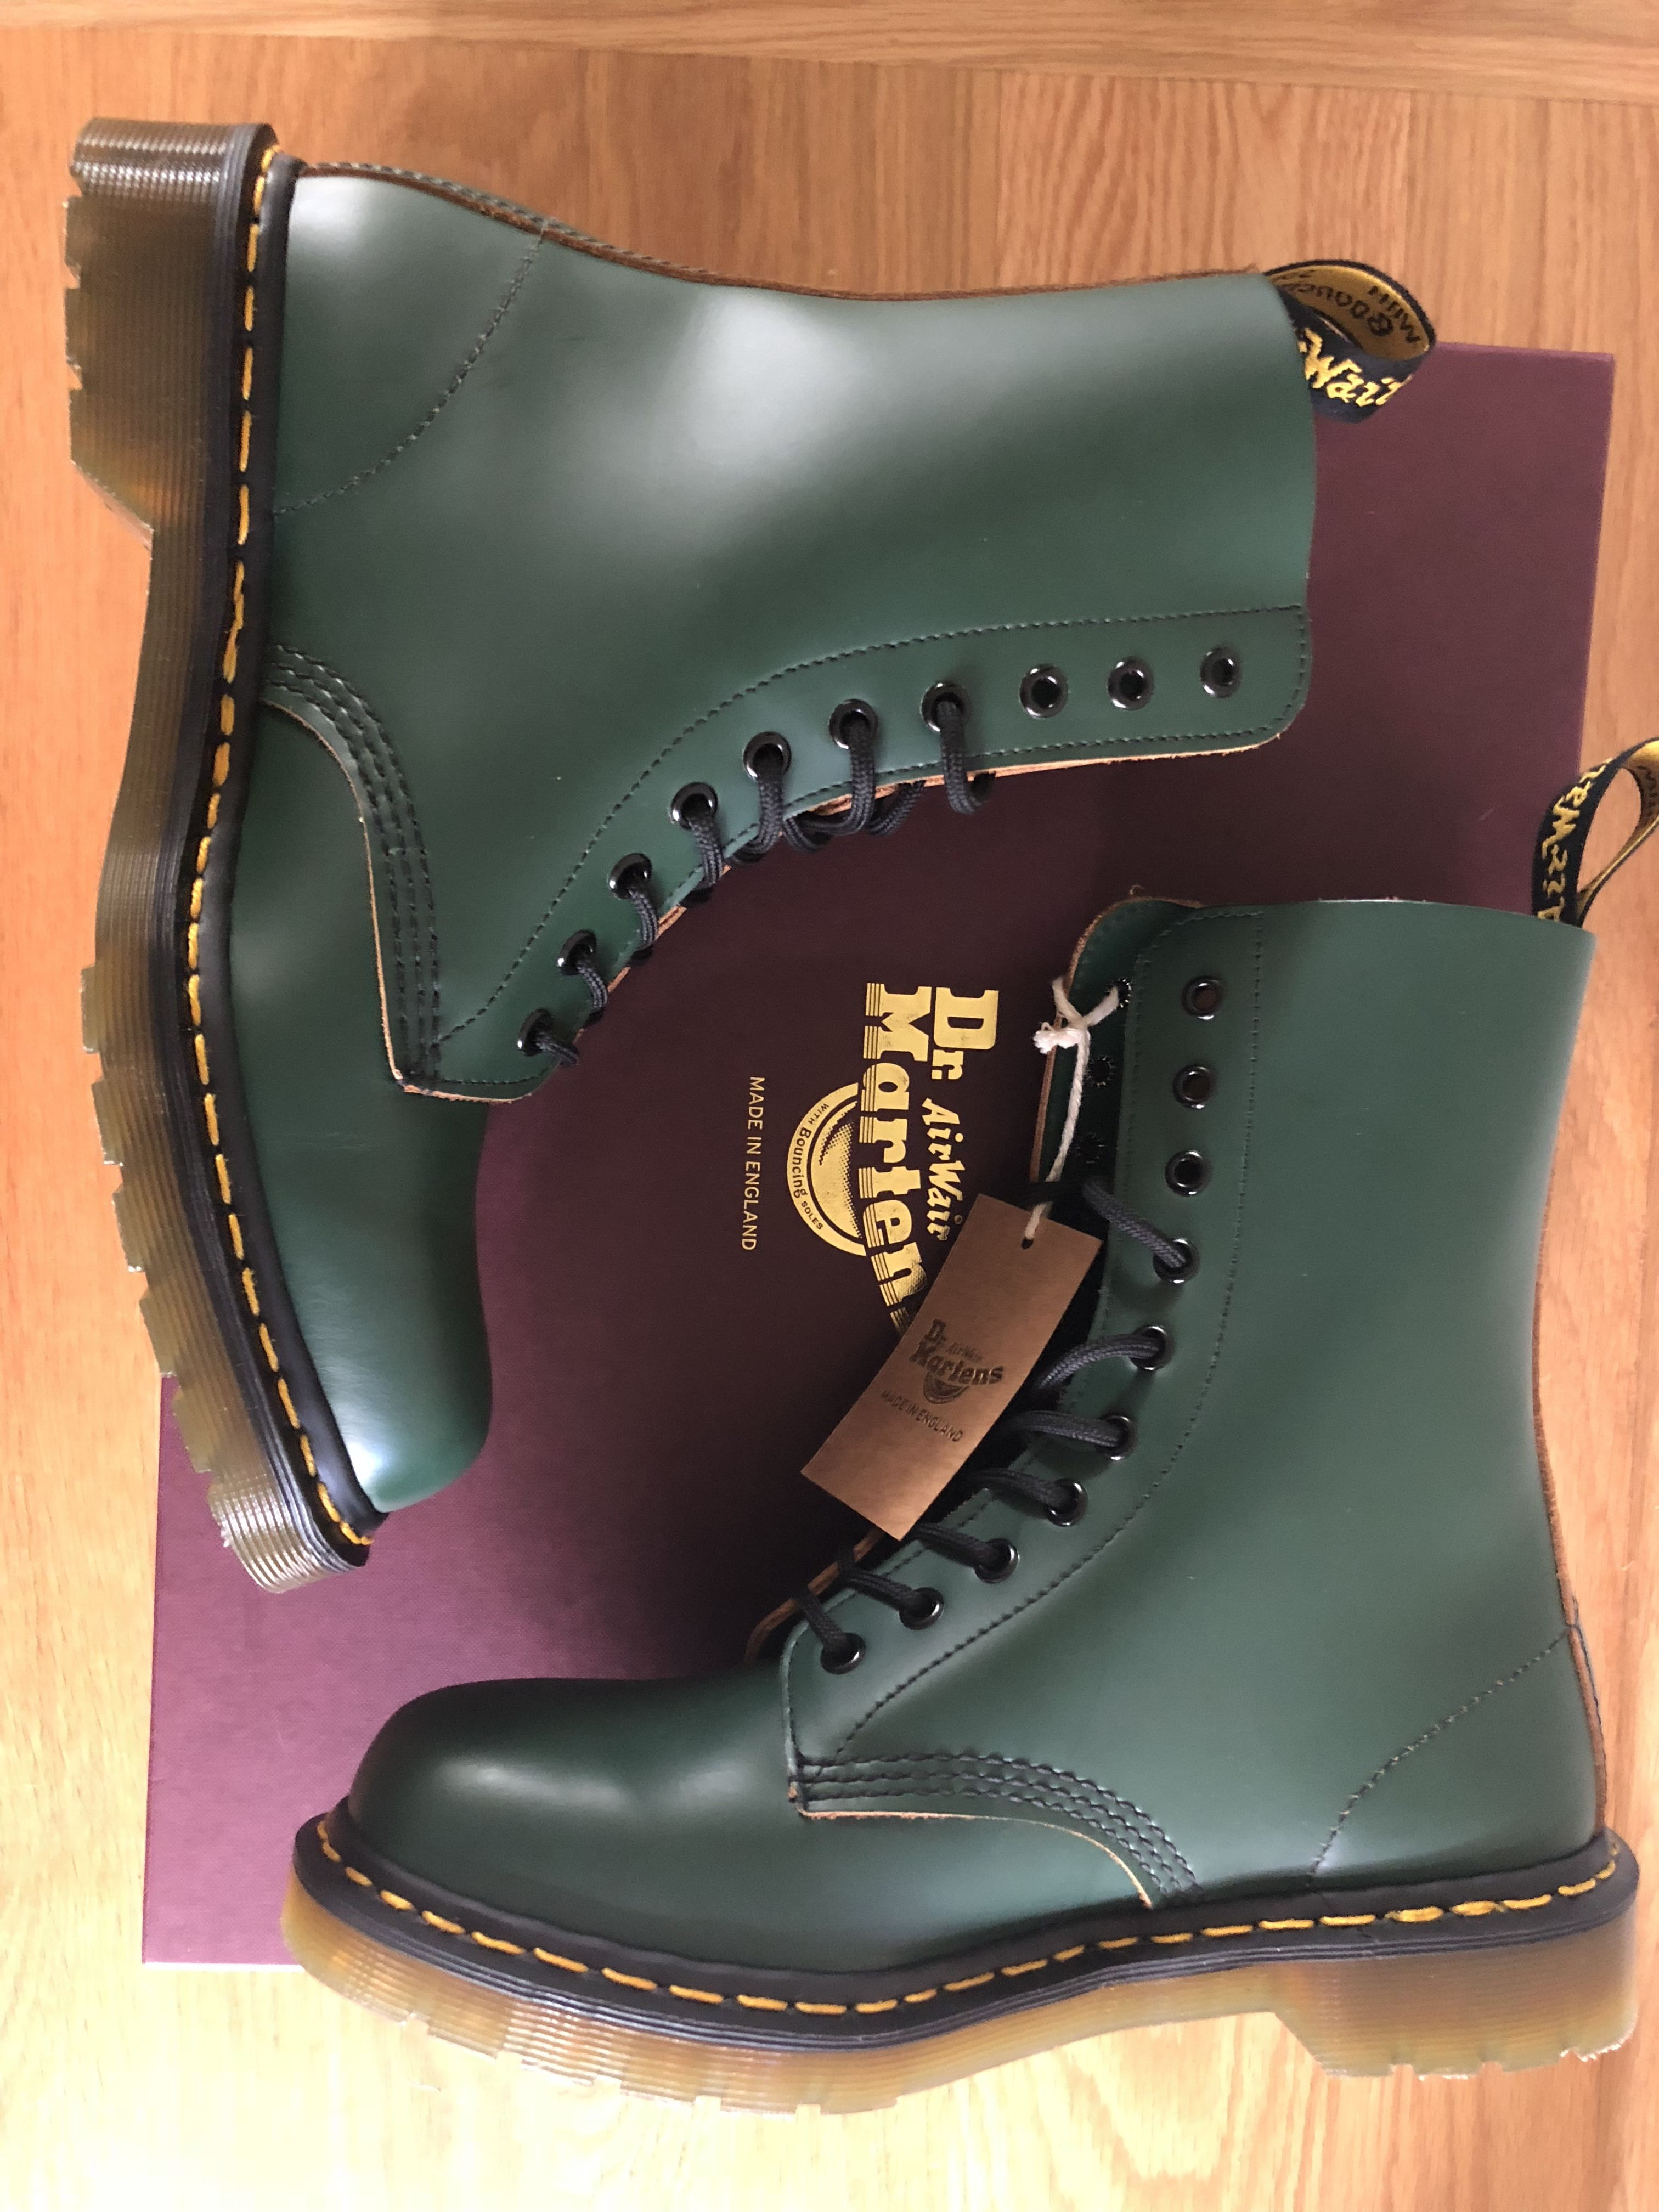 49efd515719 Dr Martens Green Made in England. #bespoke #1490 #drmartens | DMs ...